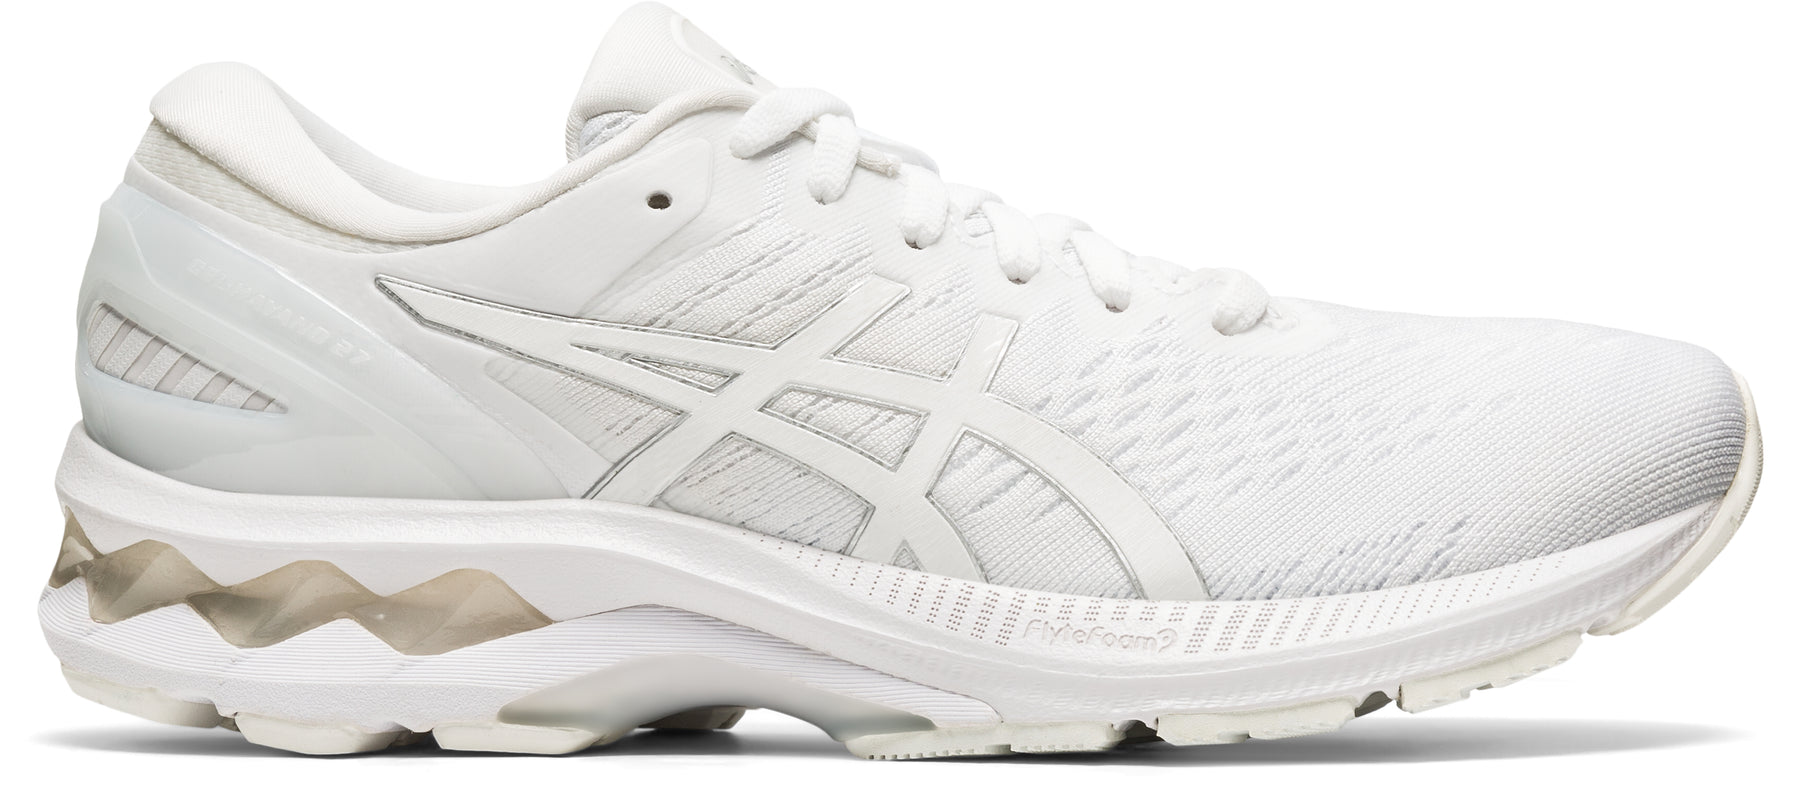 Asics Women's Gel-Kayano 27 Running Shoes in White/White